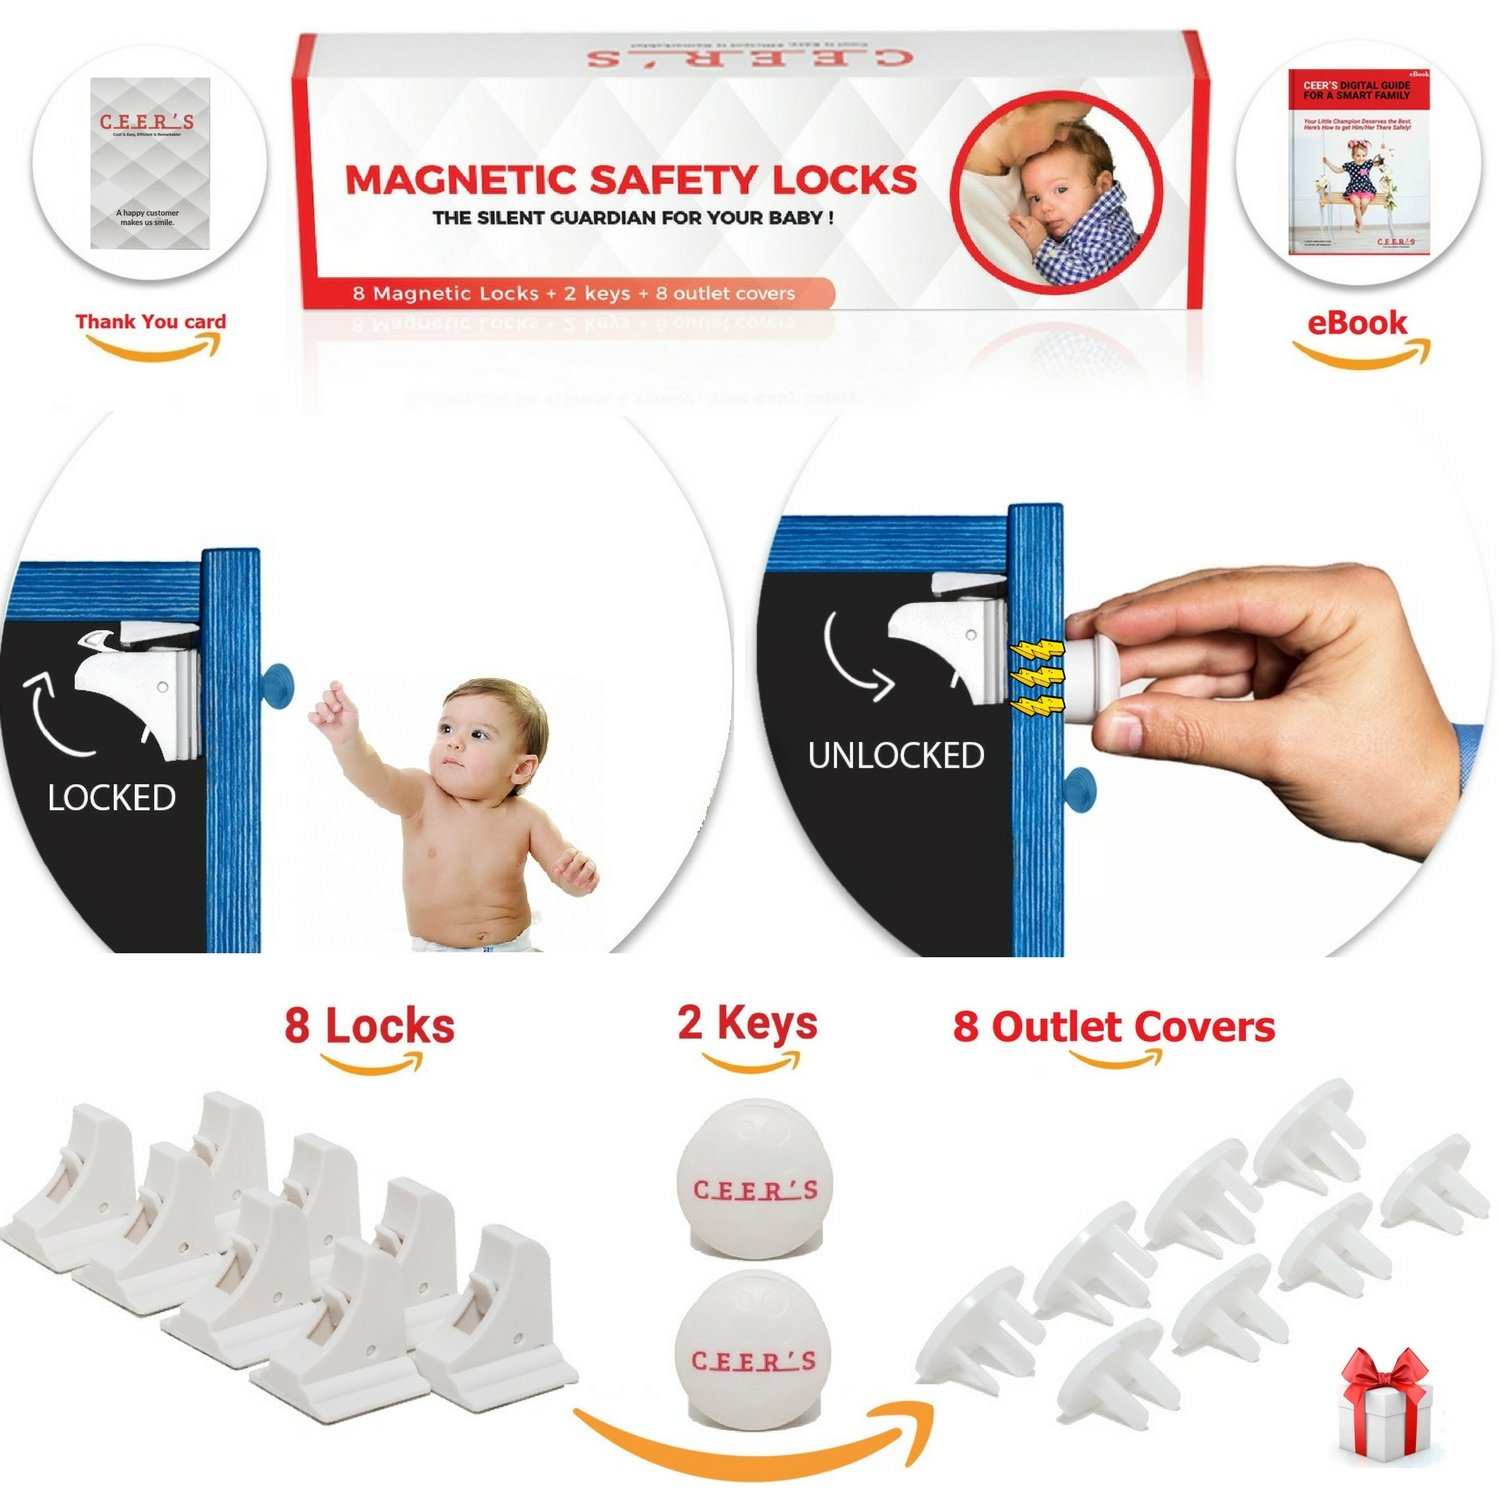 Magnetic Cabinet Locks Child Safety | 8 Baby Proof Locks and 2 Keys for All Cabinets and Drawers + 8 Outlet Covers| Easy Magnet Proofing - No Drilling Required (8 Locks 2 Keys)